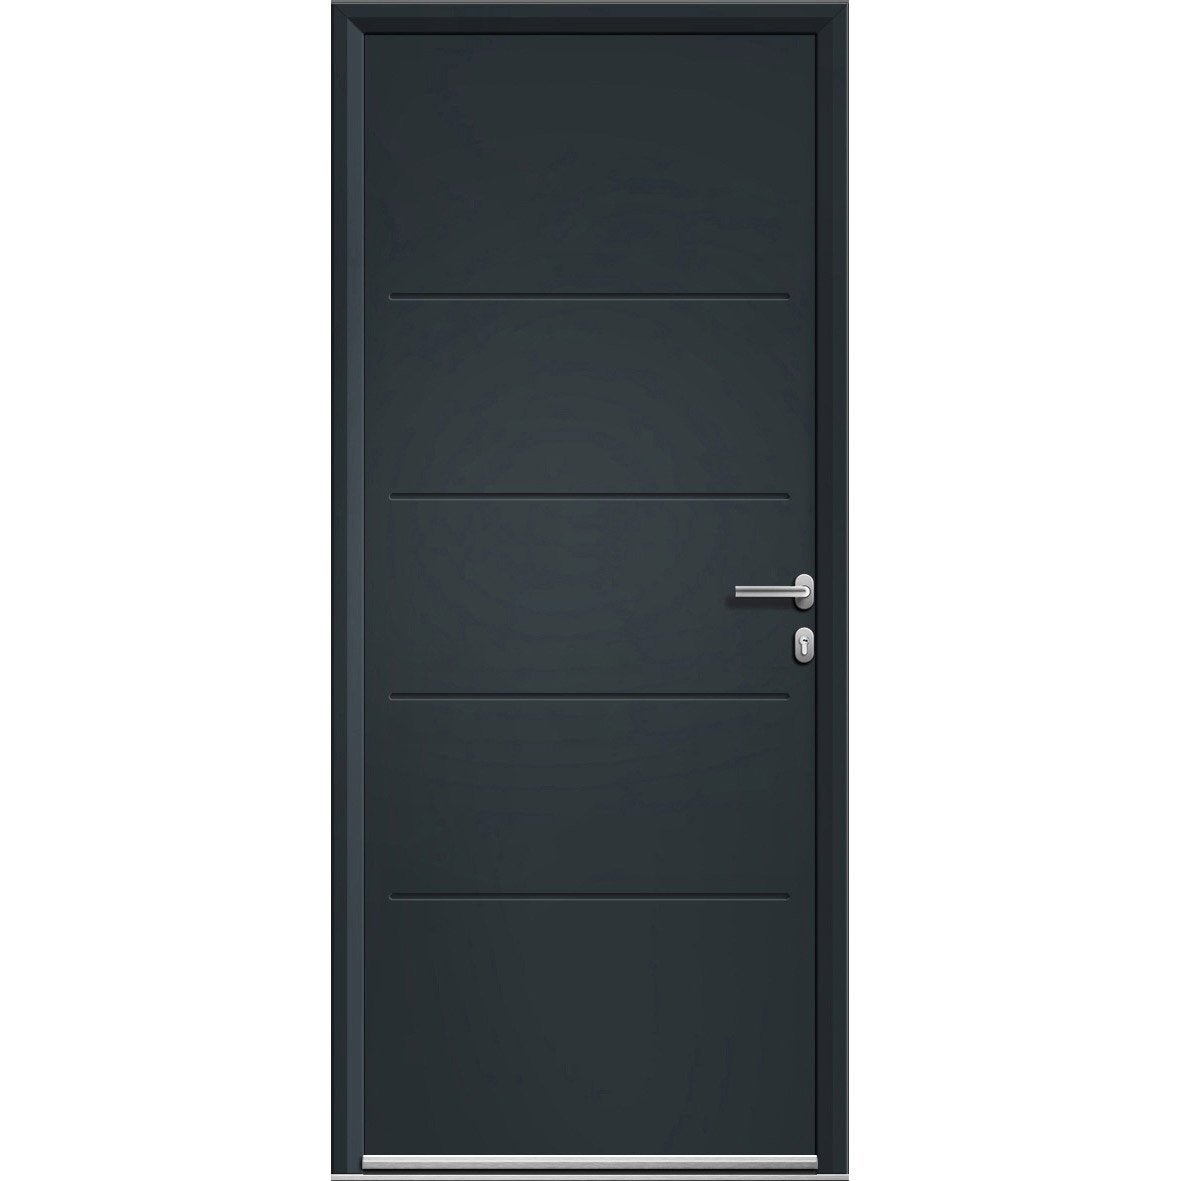 porte d 39 entr e aluminium lineal gris poussant gauche h 215 x l 90 cm leroy merlin. Black Bedroom Furniture Sets. Home Design Ideas